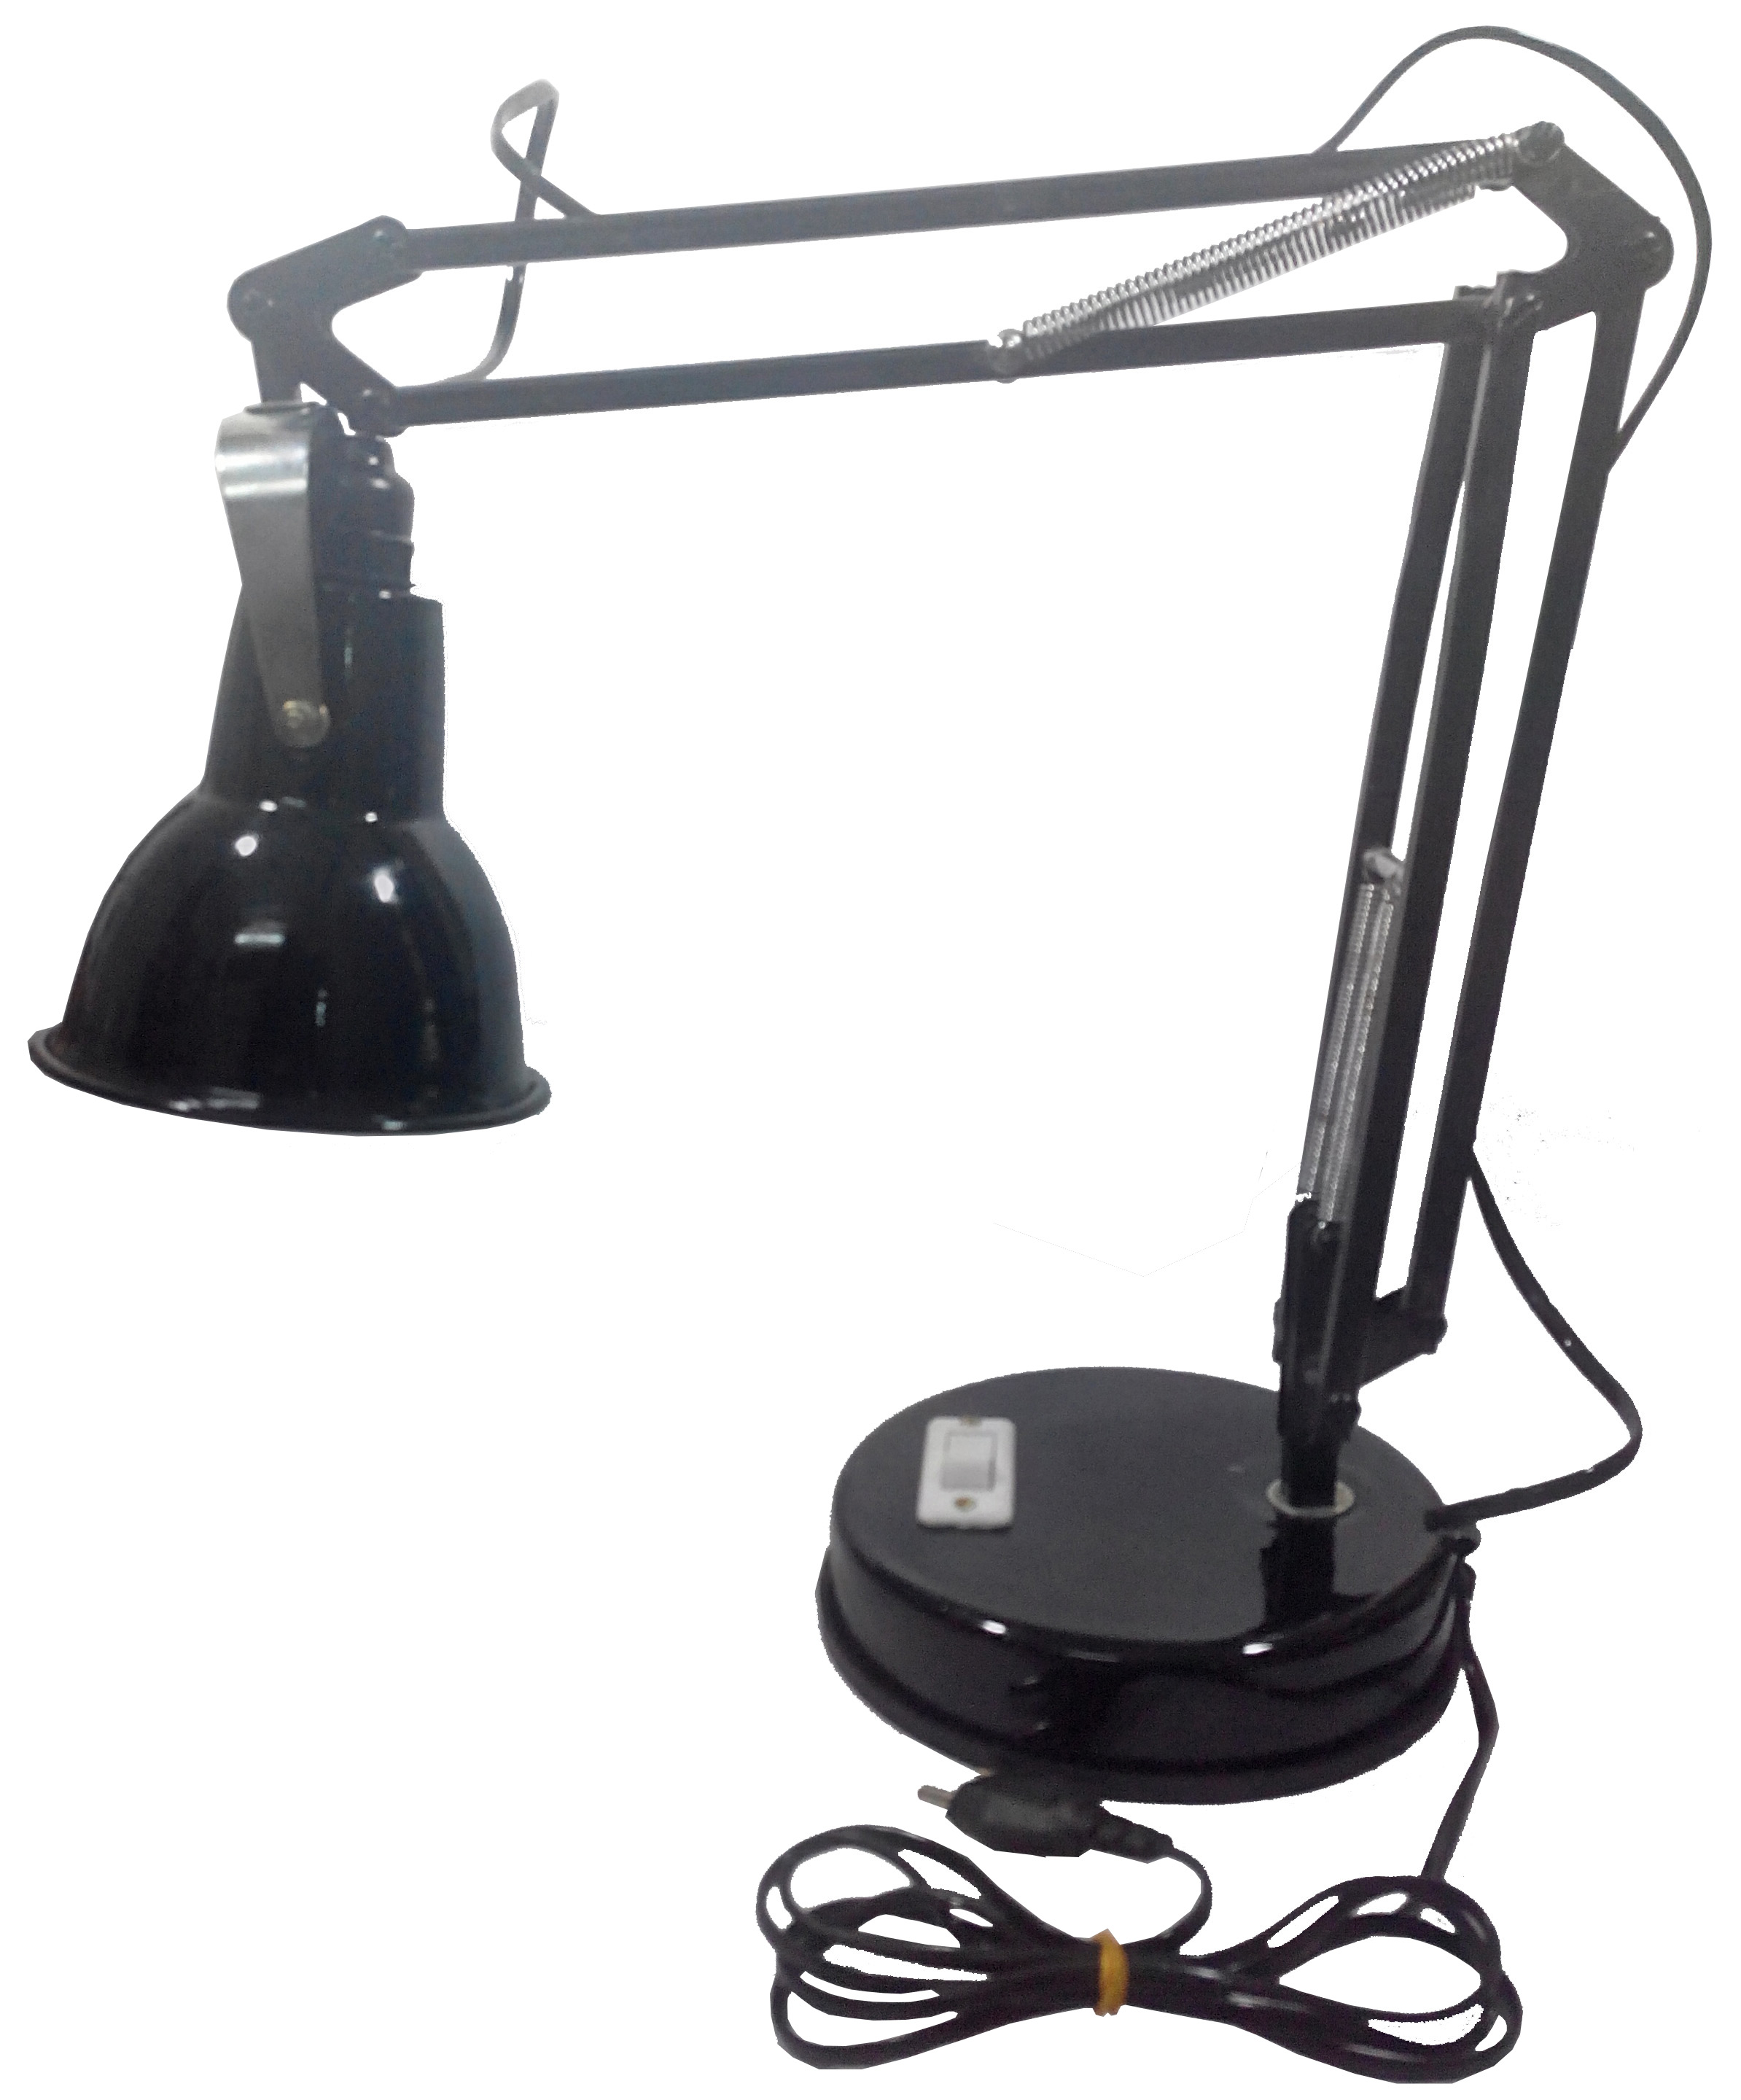 RDC 13 Inches Arm Black Doctors` Lamp for Study/Reading / Work/Professional`s & Technician`s Use